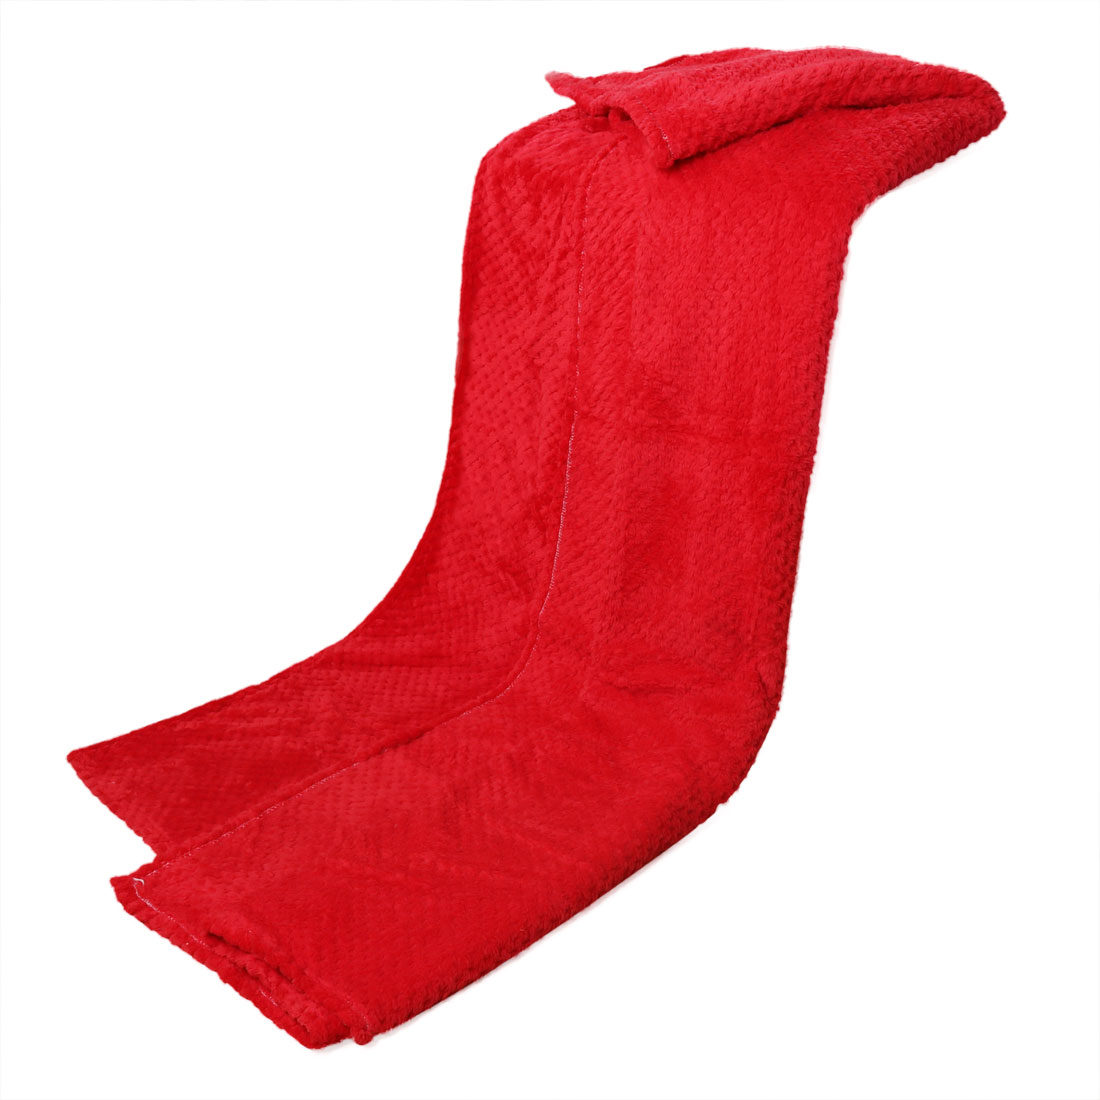 330 GSM Soft Warm Rug Fleece Throw TV Blanket for Couch, Sofa or Bedroom 59 x 47 Inches